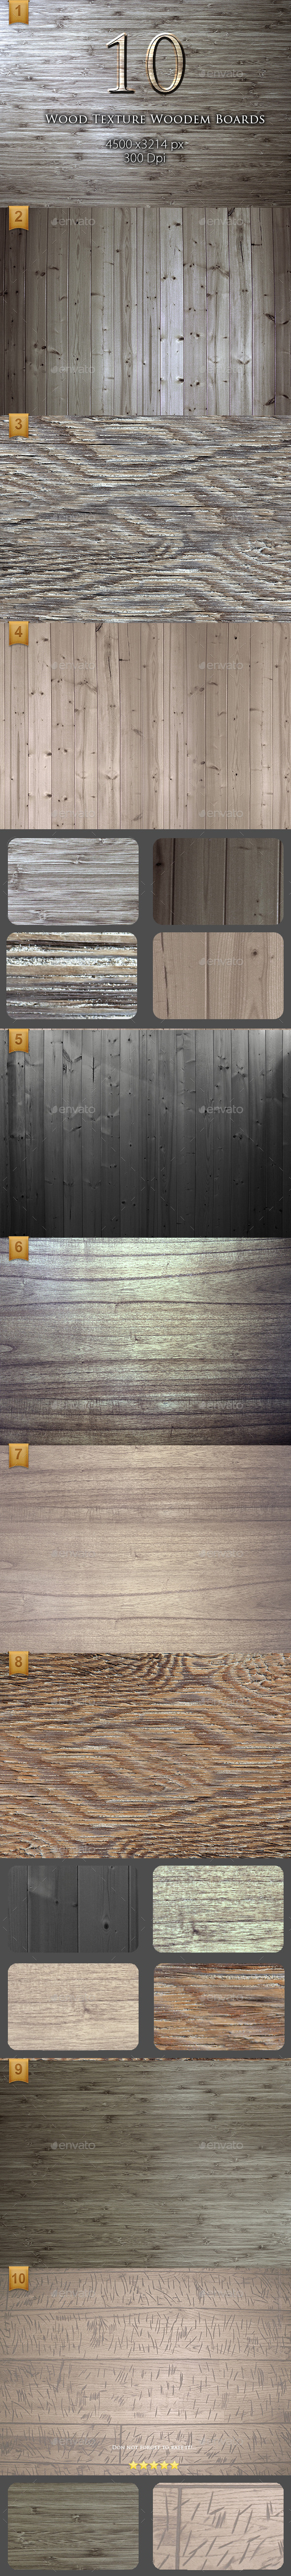 10 Wood Texture Wooden Boards - Wood Textures